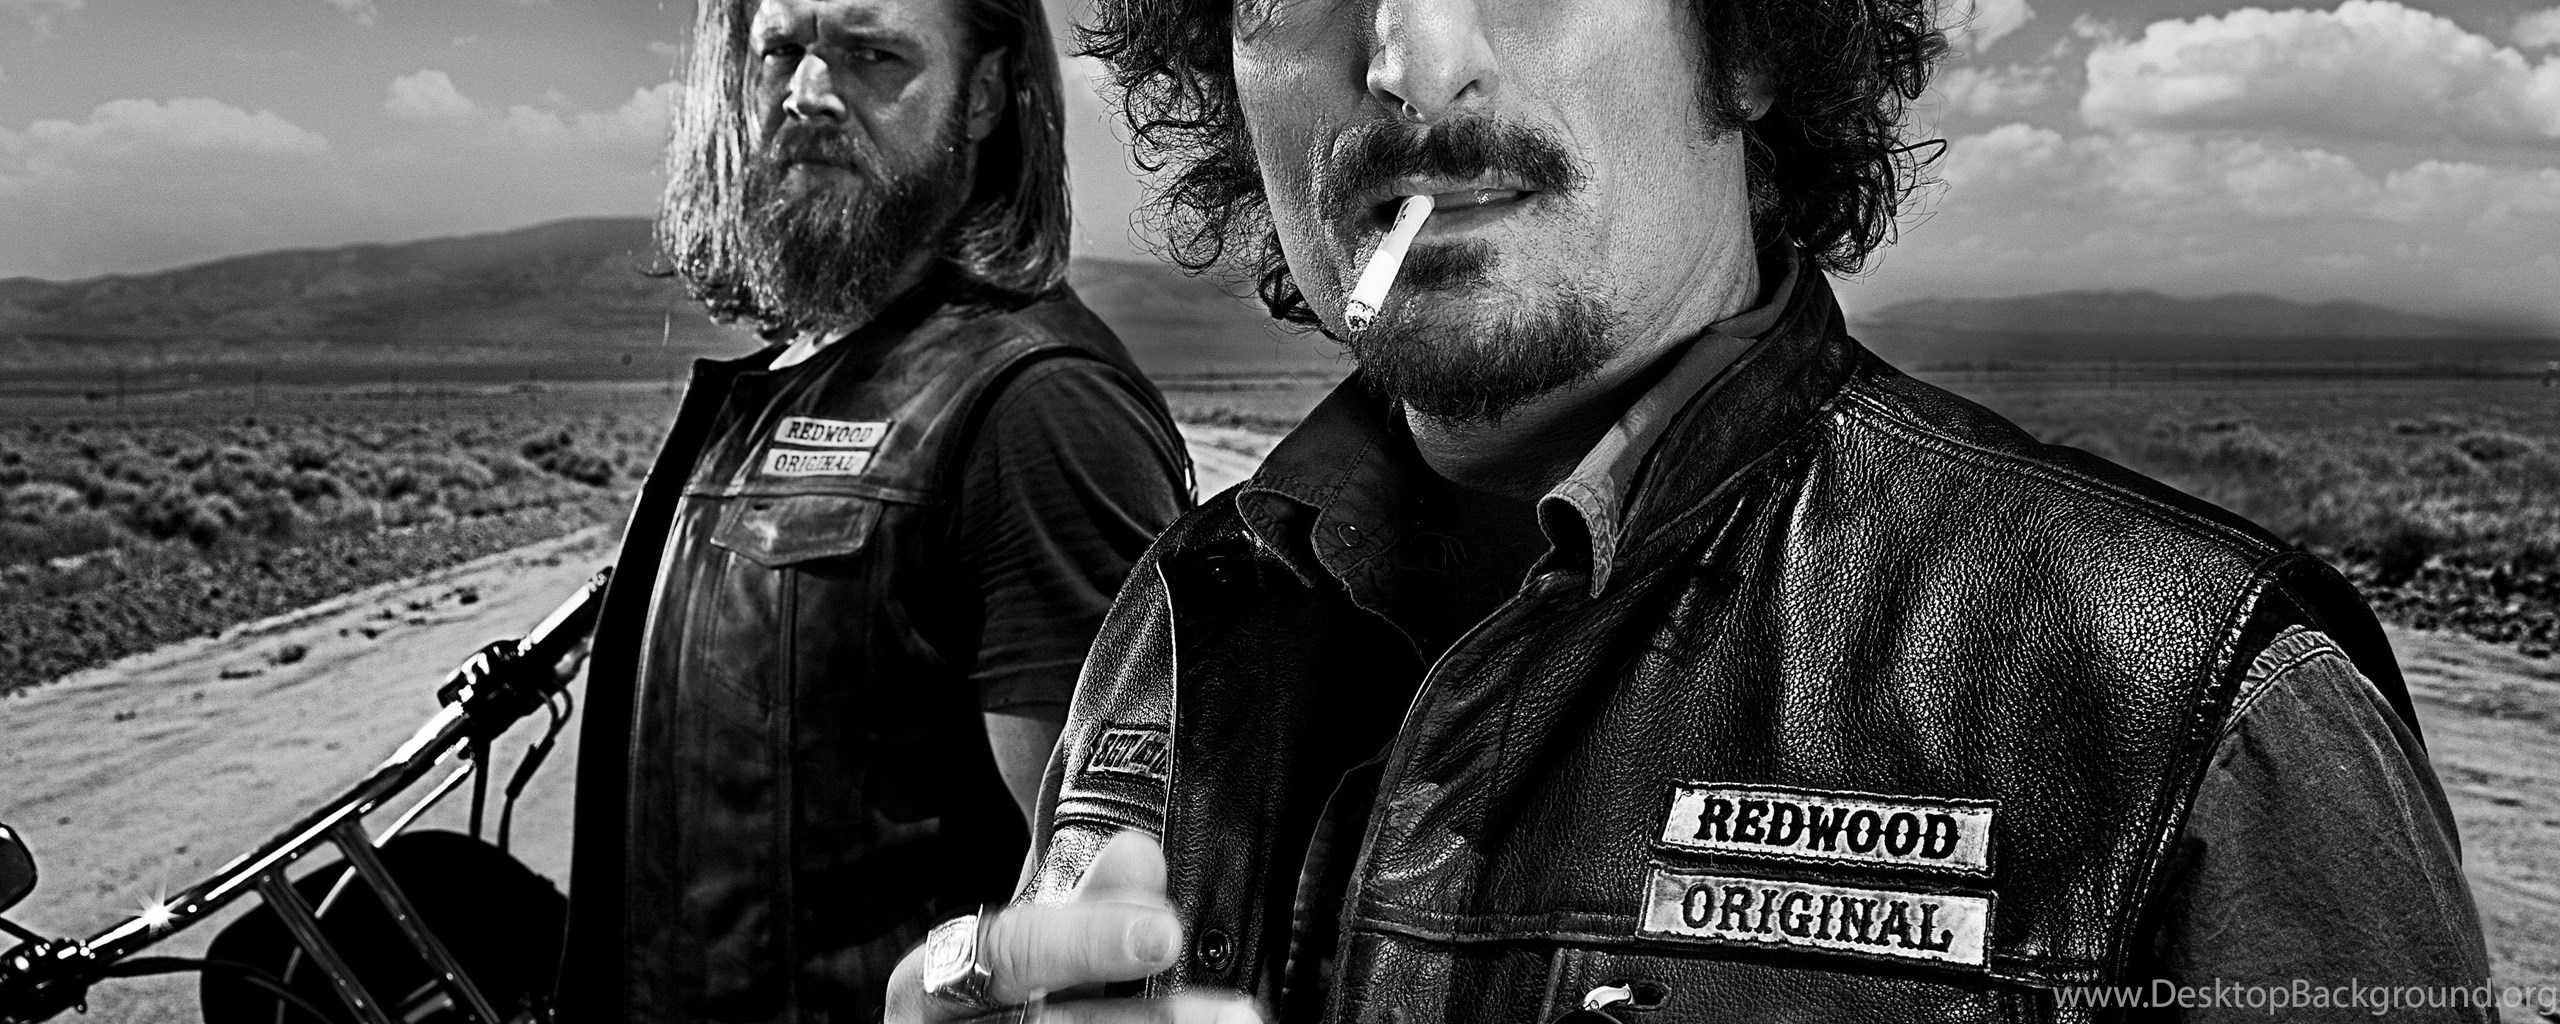 Sons Of Anarchy Computer Wallpapers, Desktop Backgrounds